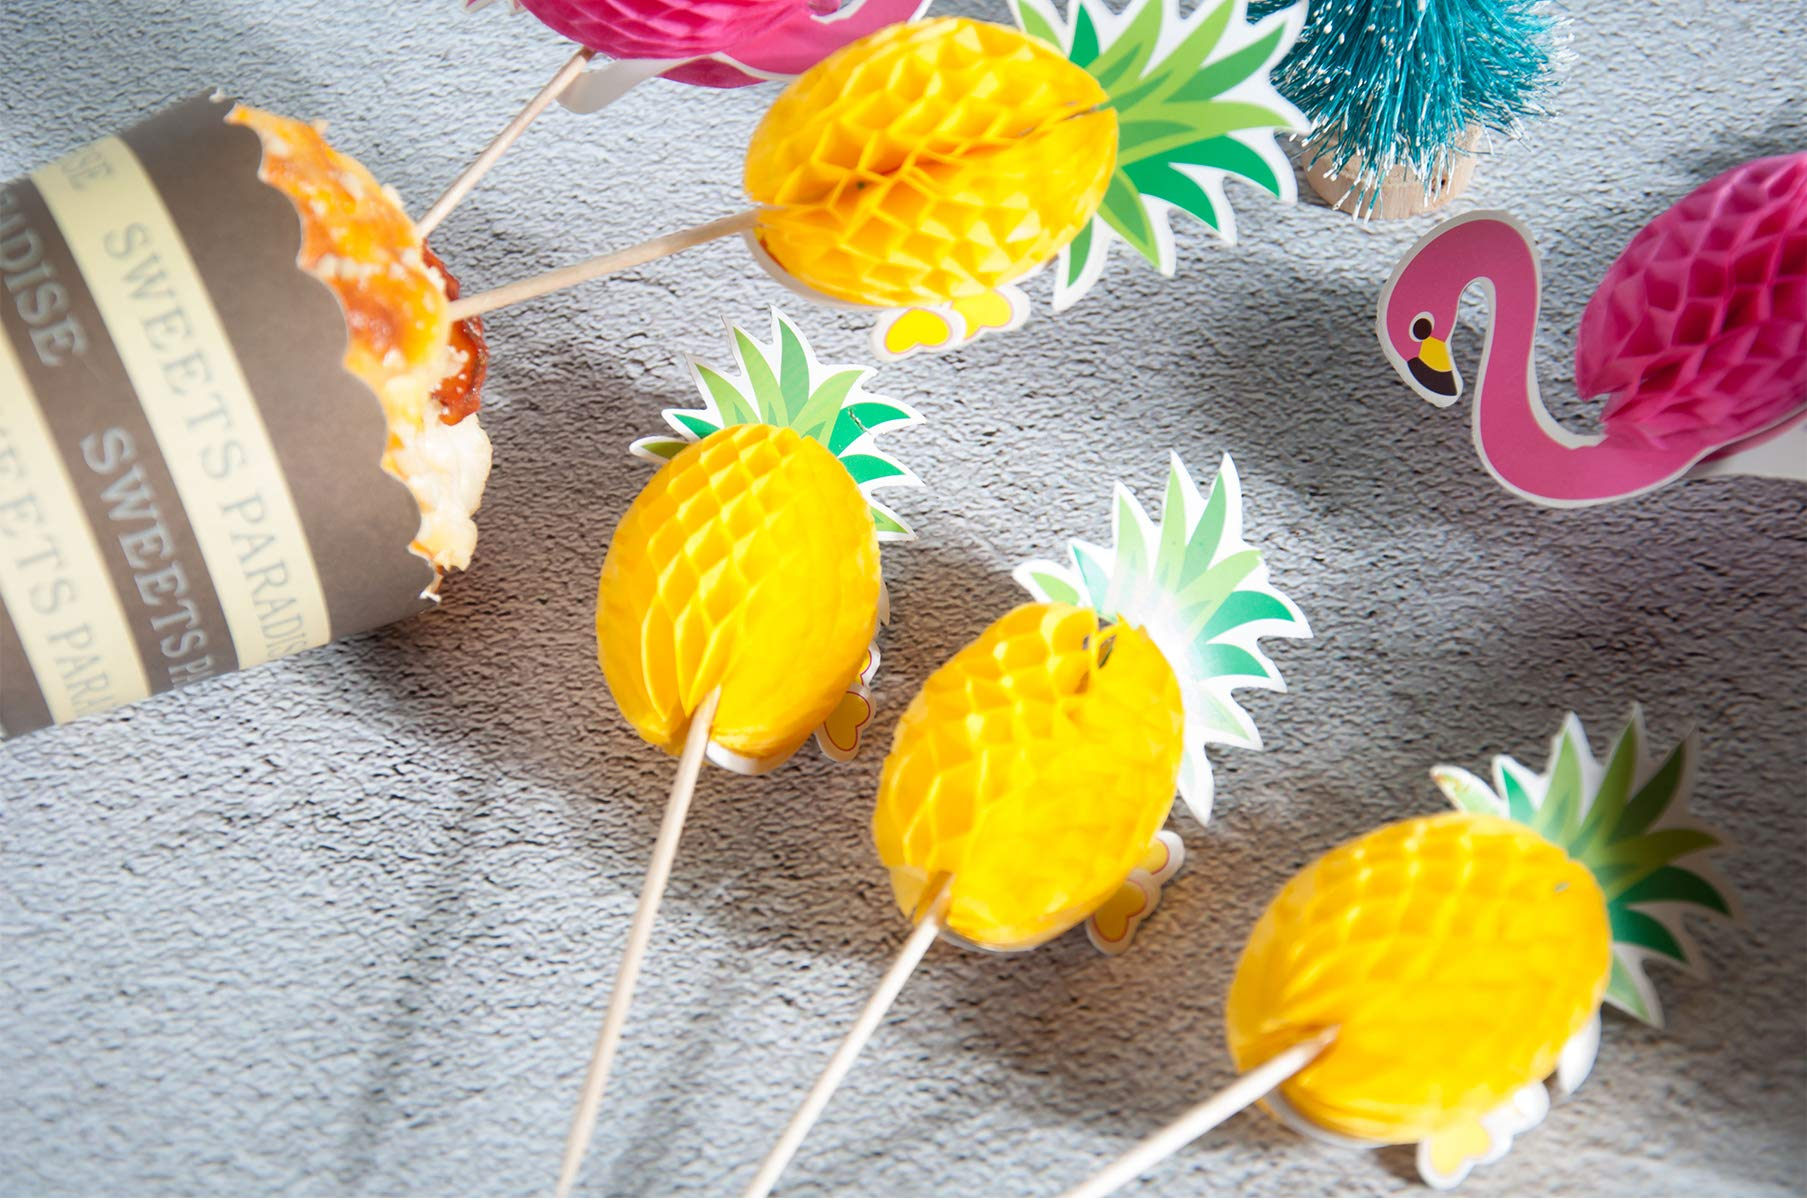 Lauren 48 Pcs Cupcake Toppers 3D Flamingo and Pineapple Cupcakes Toppers Food Picks Party Cocktail for Party Tropical Cupcake Picks Decoration by Lauren (Image #8)